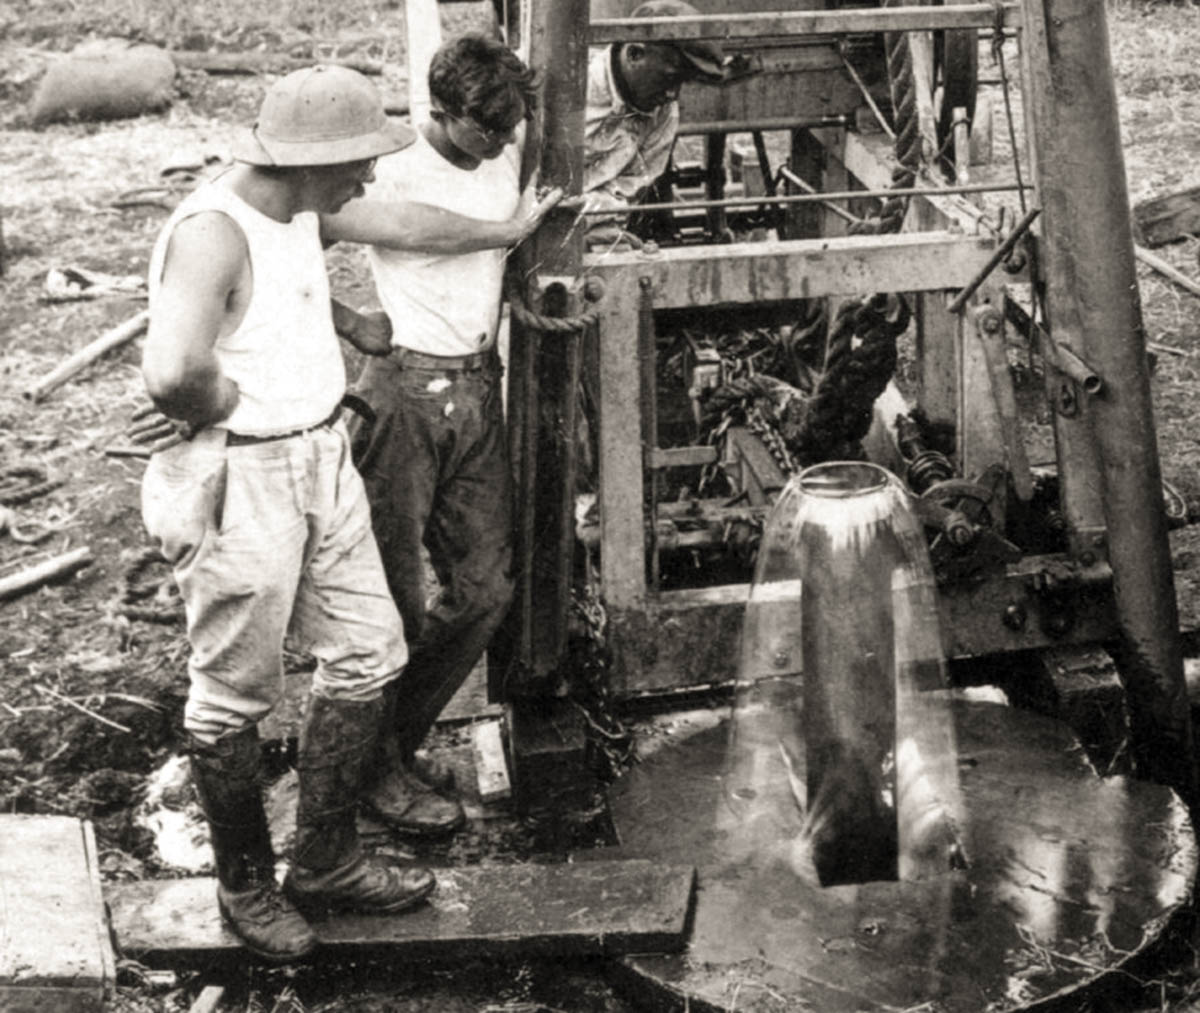 historical photo of well drilling